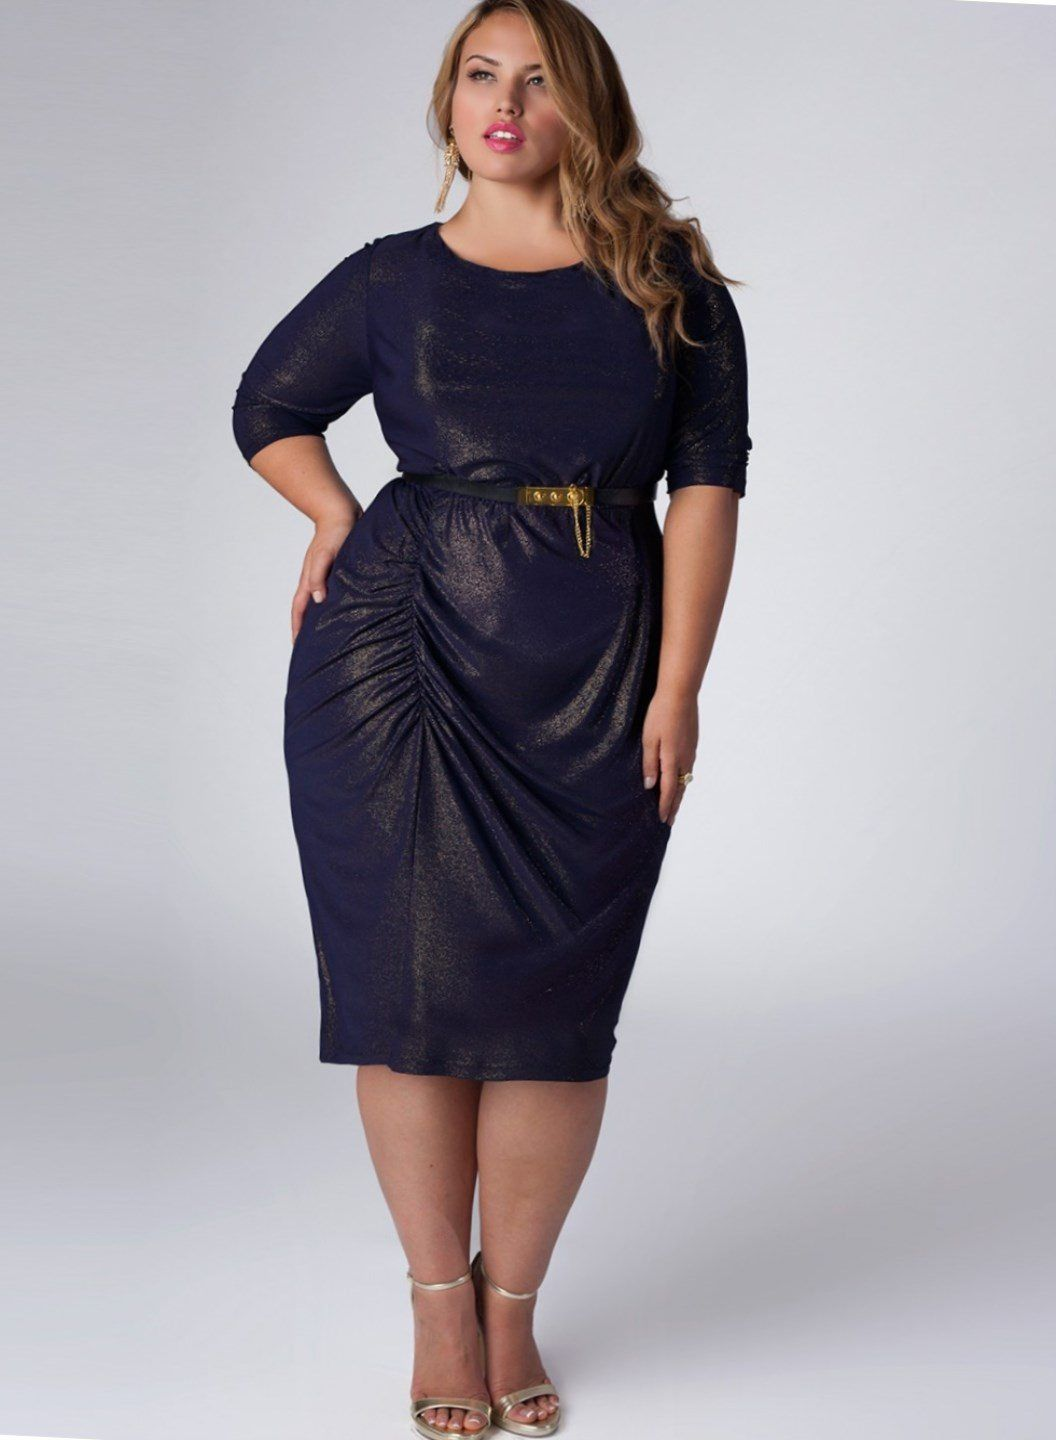 Cheap plus size formal dresses for weddings trendy for Cheap wedding guest dresses